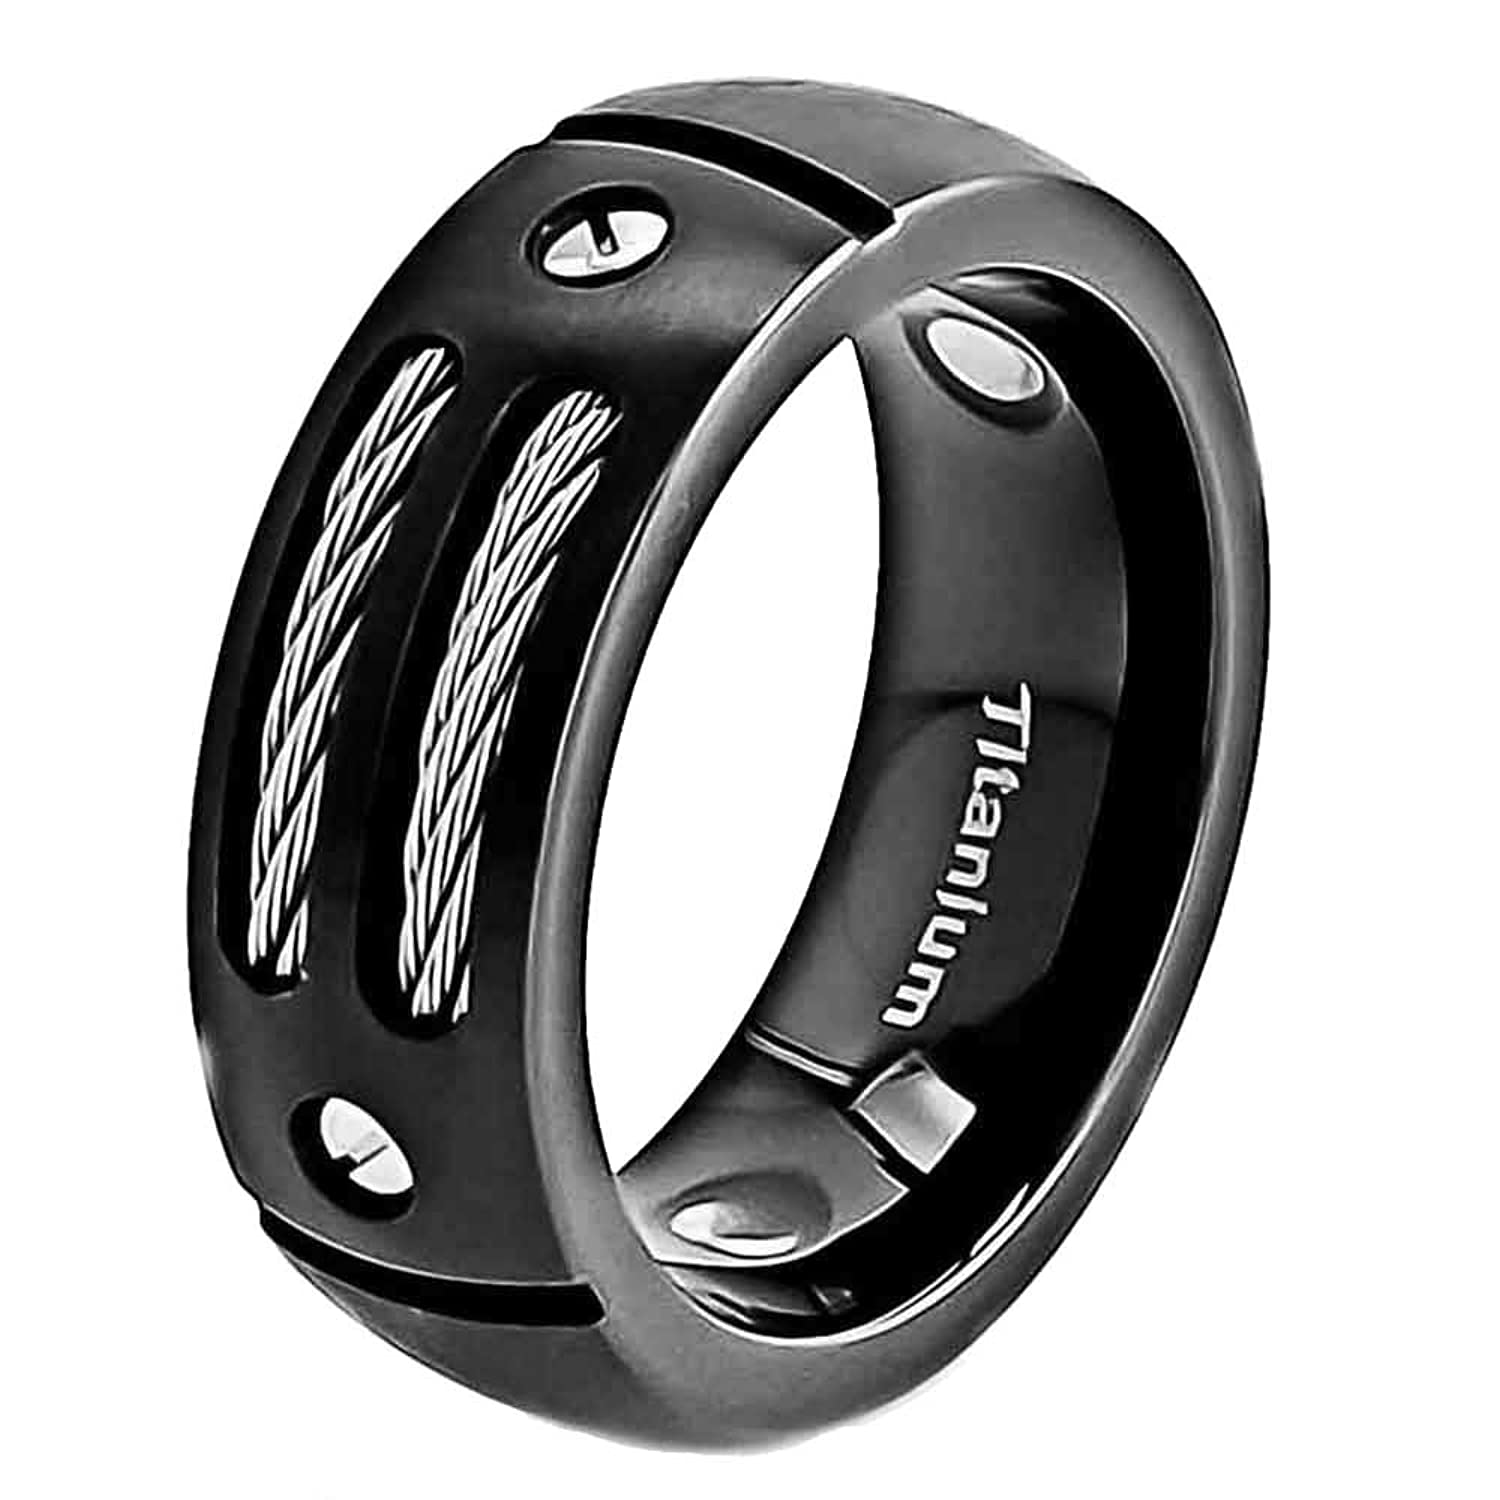 carbon inlaied wedding carbide s coolman rings men logo band for with coolmanjeweller tungsten fiber ring customized black